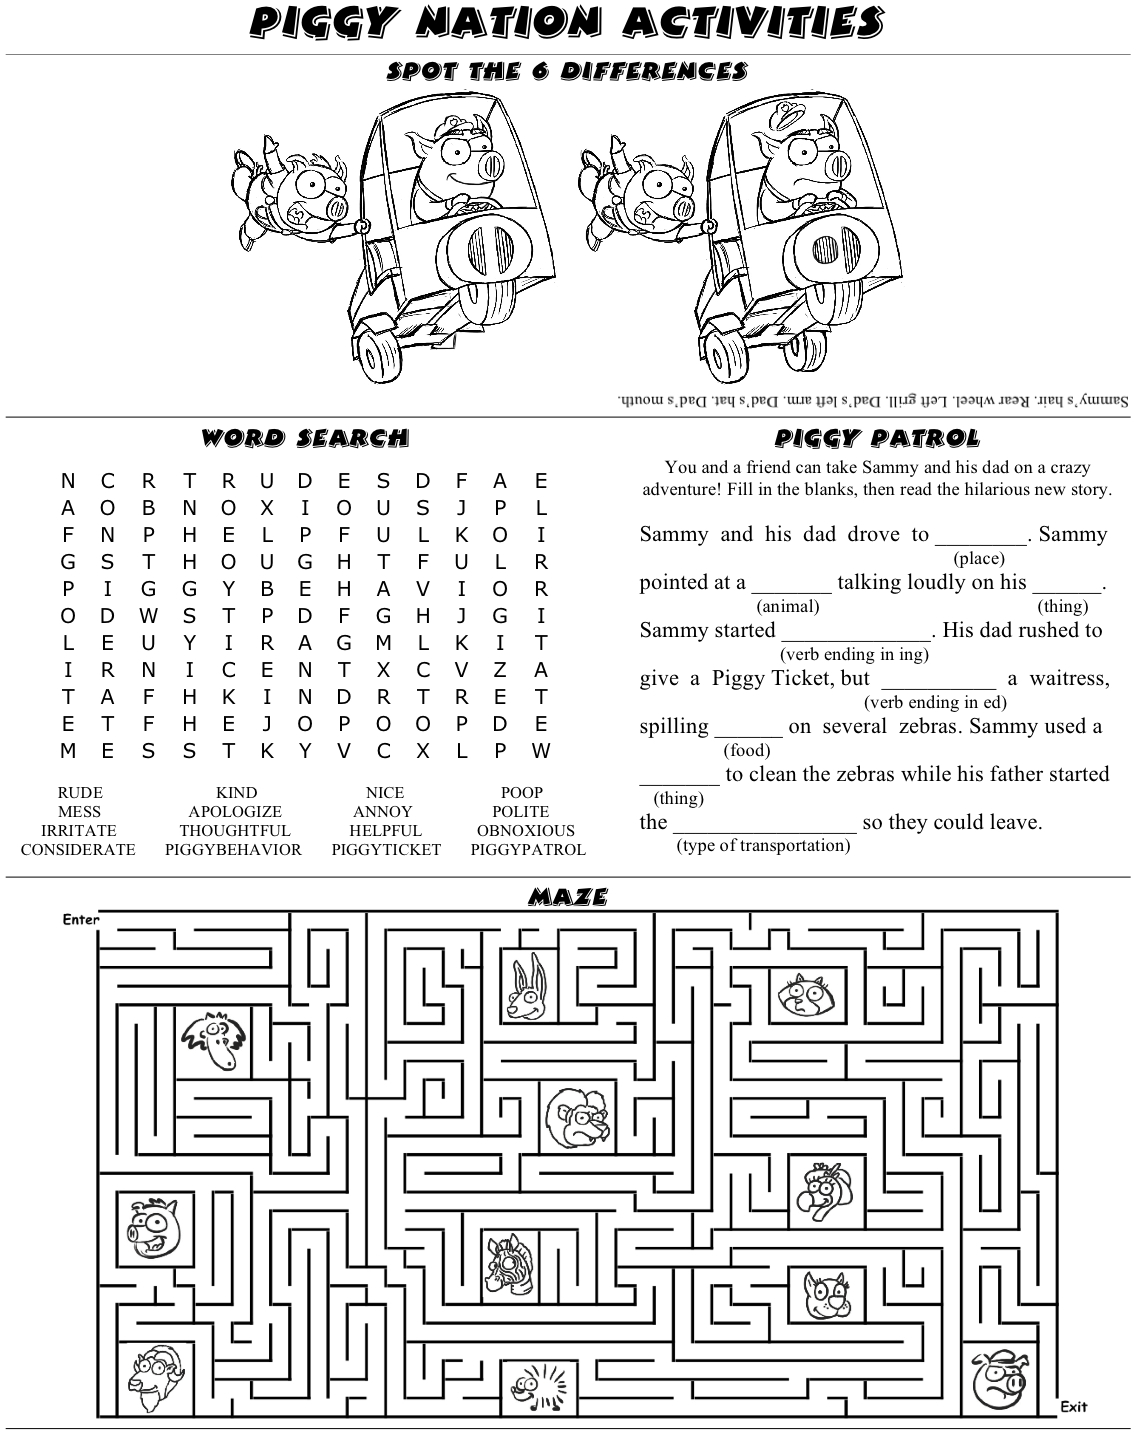 Activity Sheet 187 Piggy Nation Children S Colouring Activity Sheets